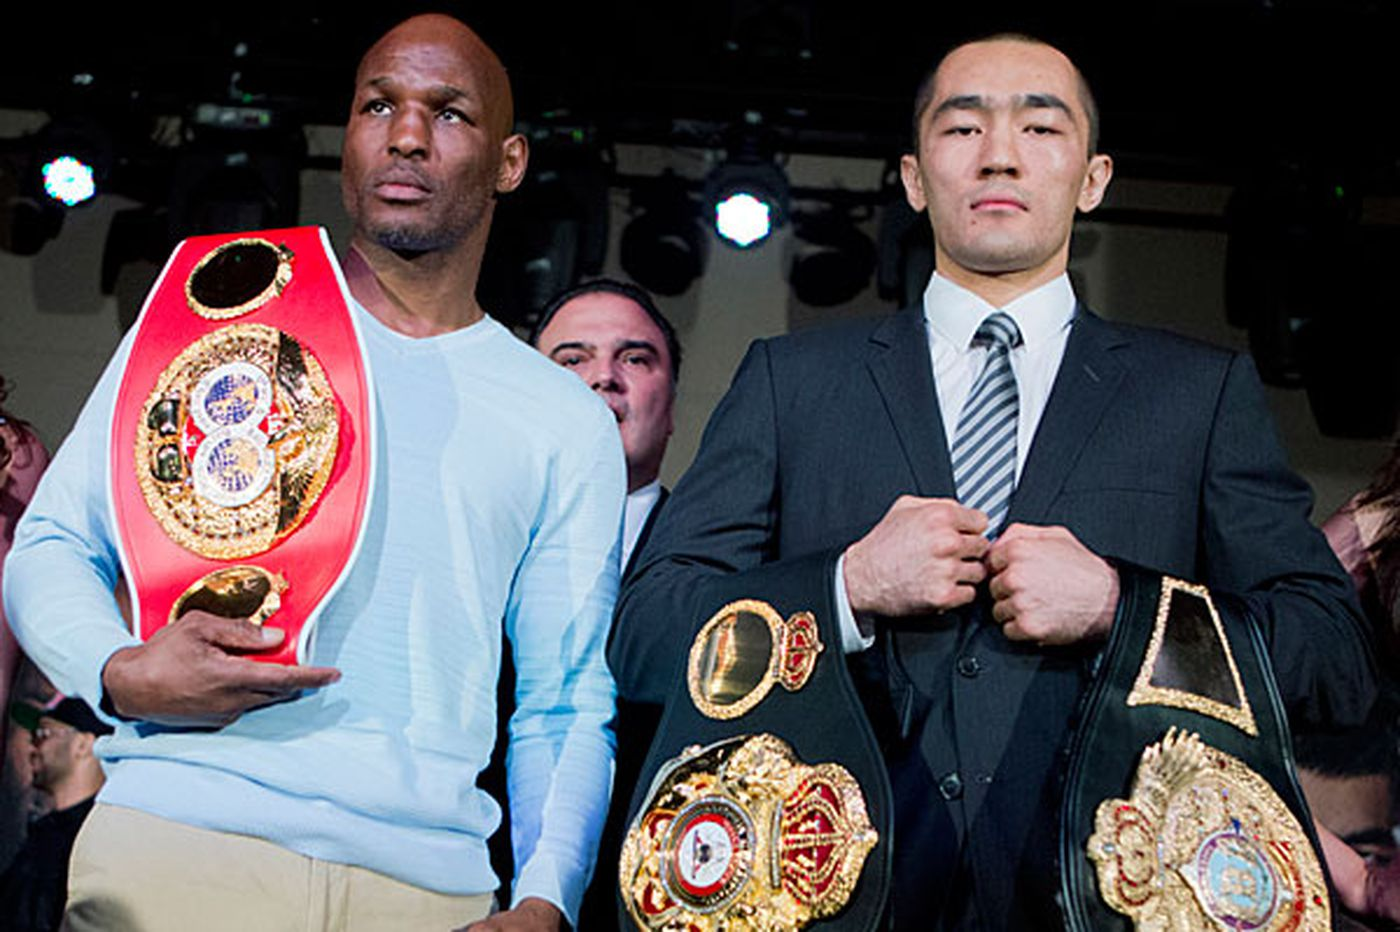 Hopkins takes a couple of belts before fight